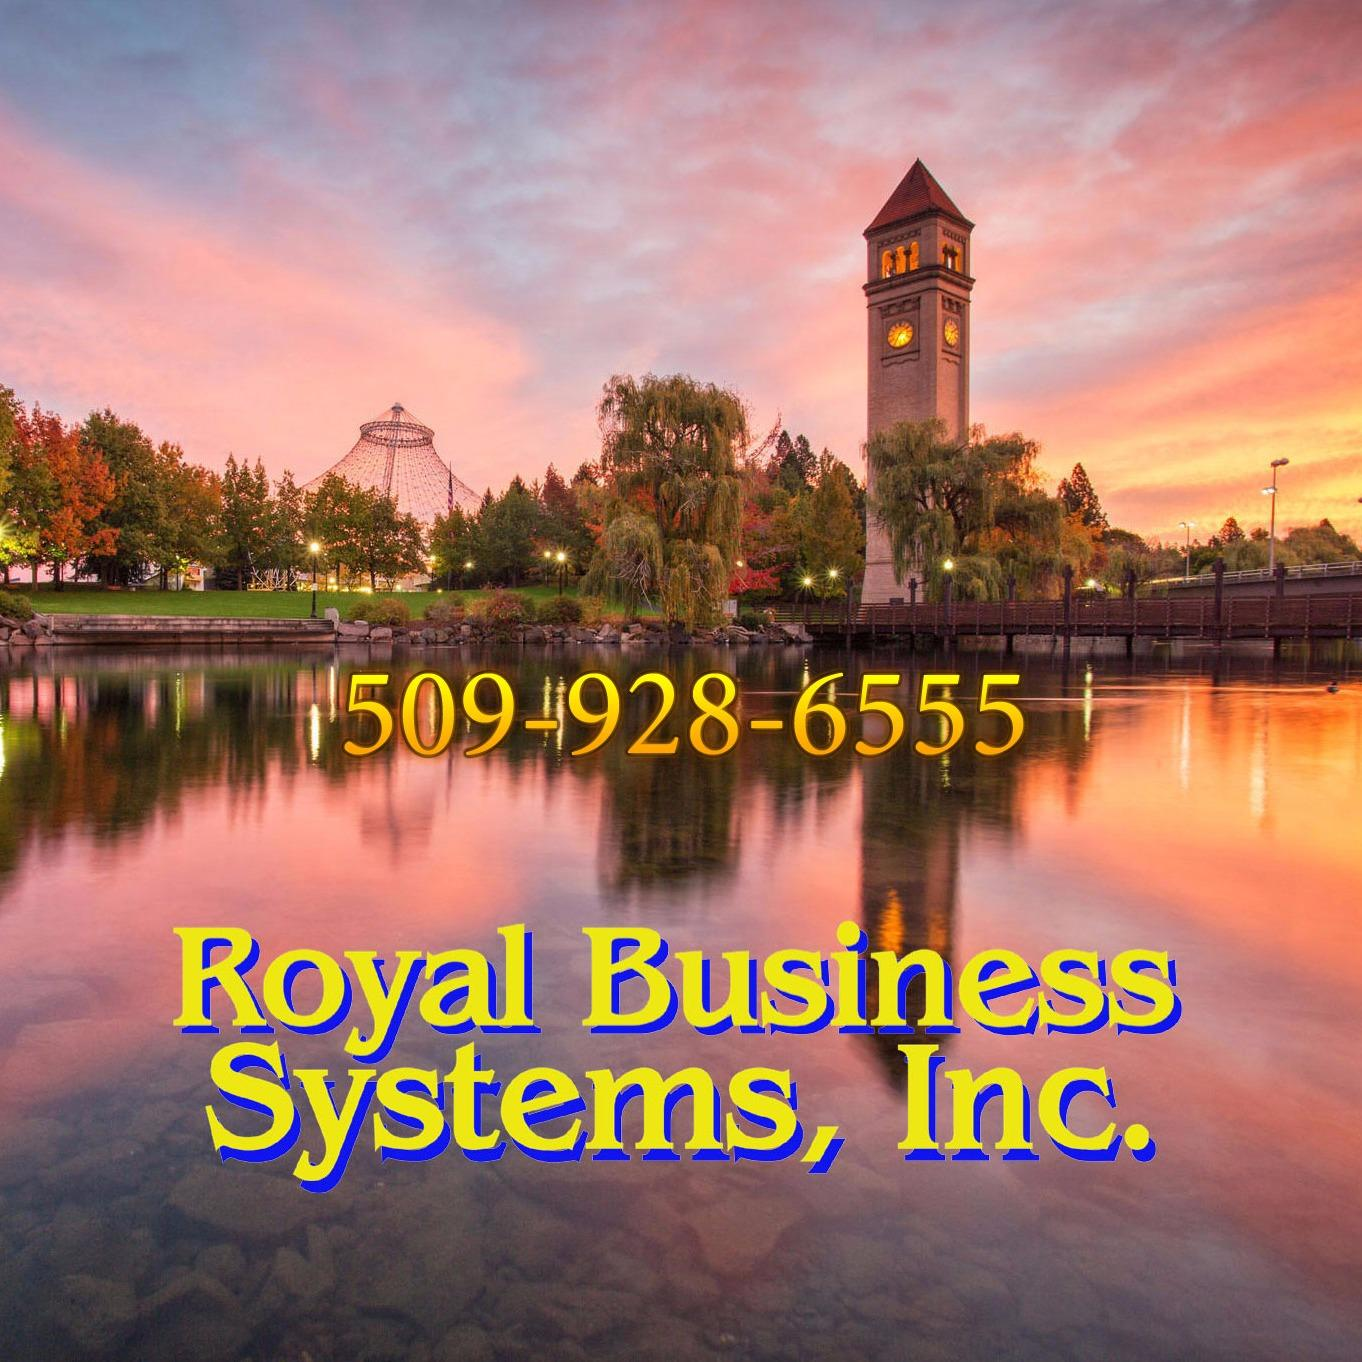 Royal Business Systems